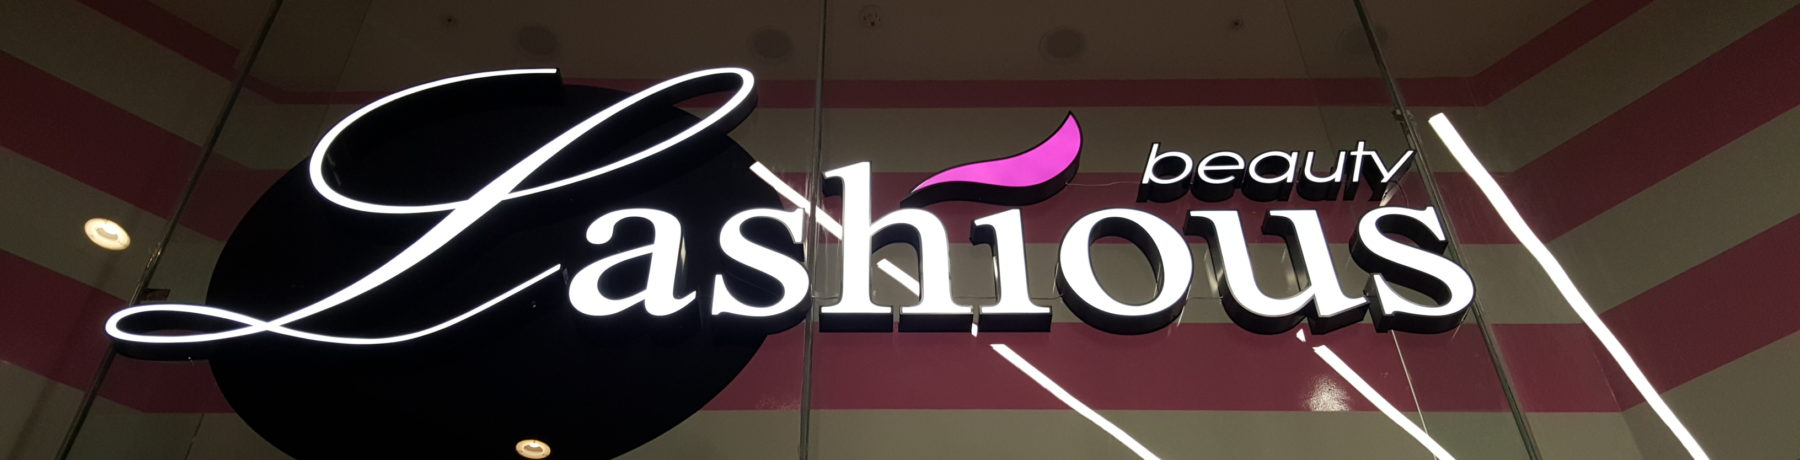 Large built up illuminated letters on glass